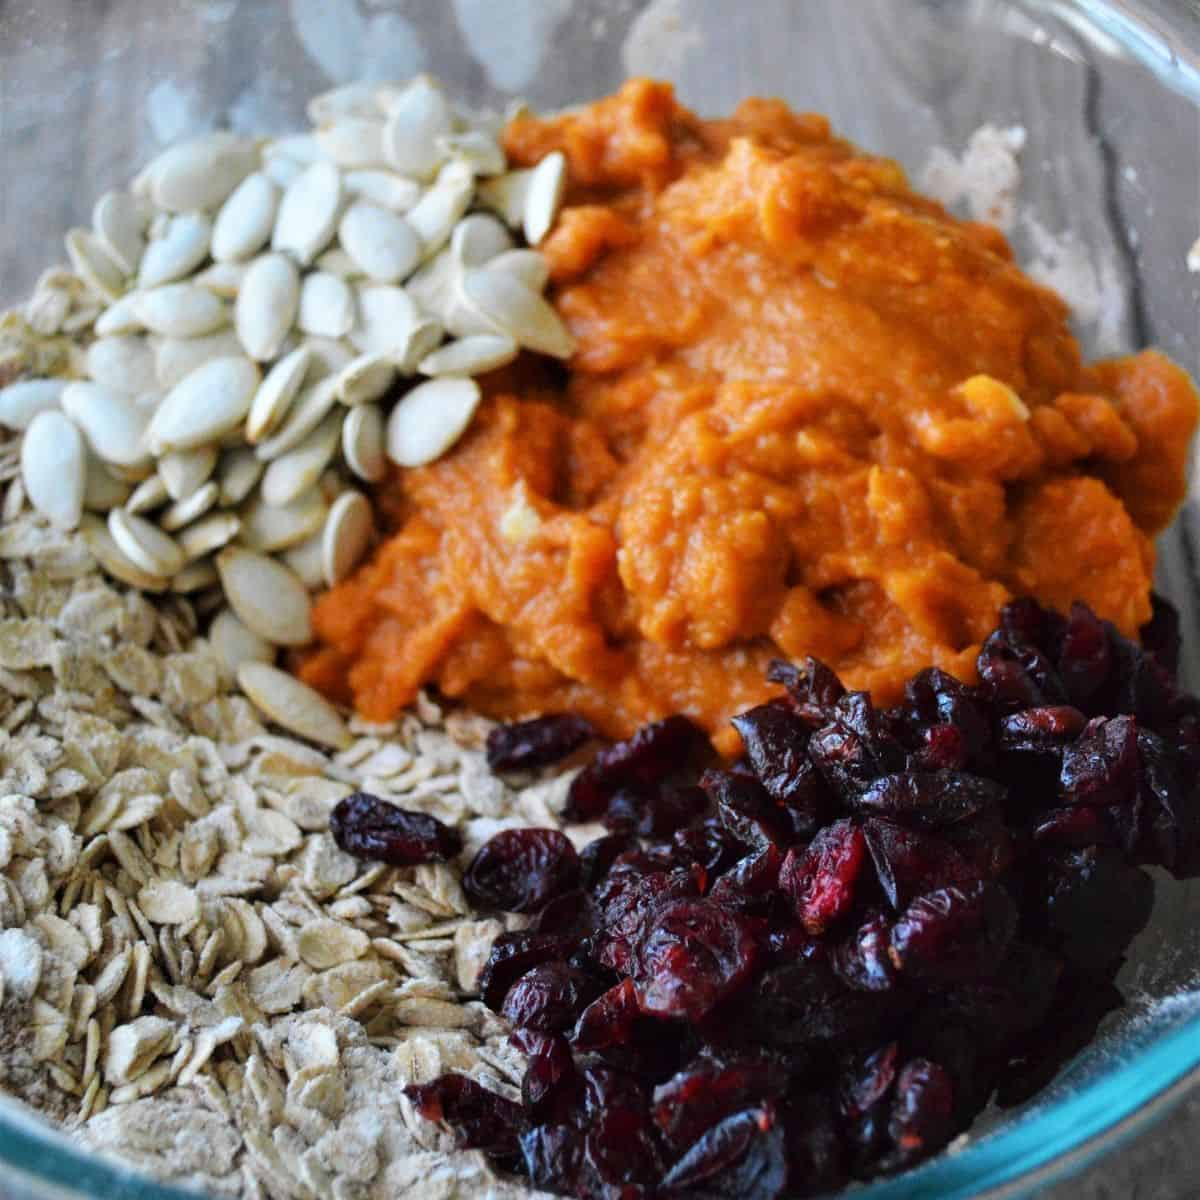 Combining the wet and dry ingredients plus pumpkin seeds and dried cranberries